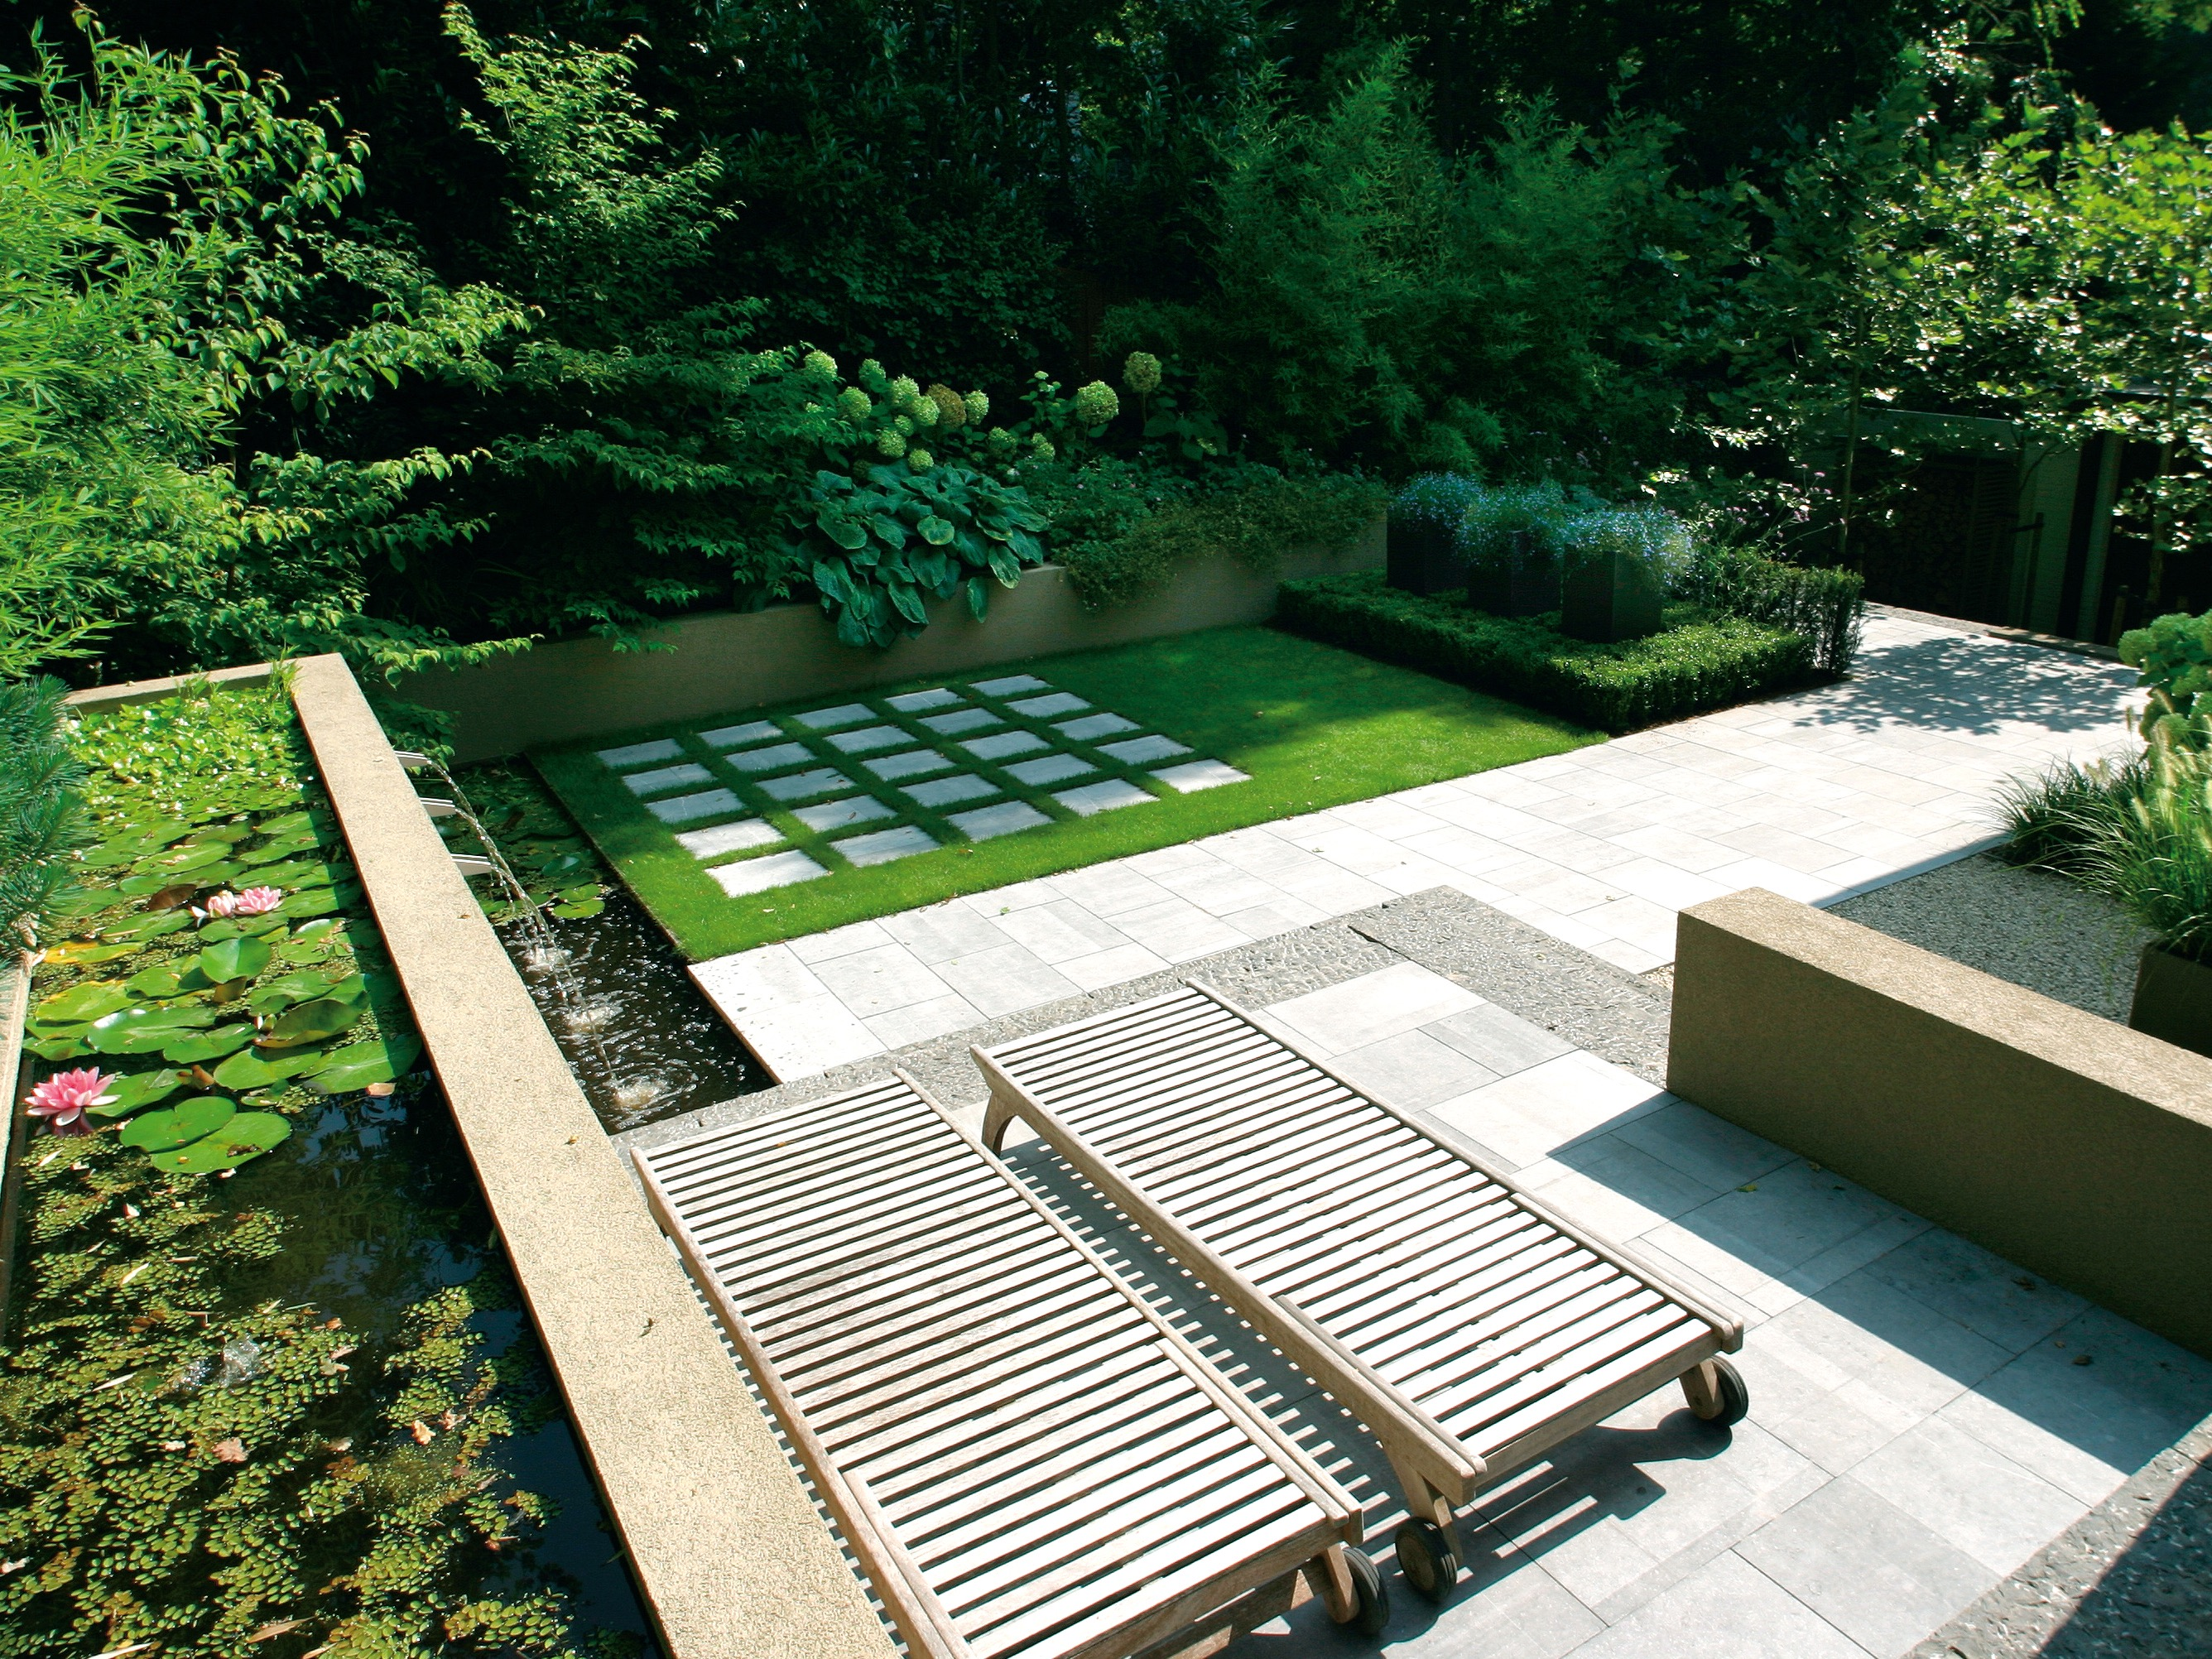 Contemporary Garden Combines With Simple Hardscape Design (Image 8 of 35)